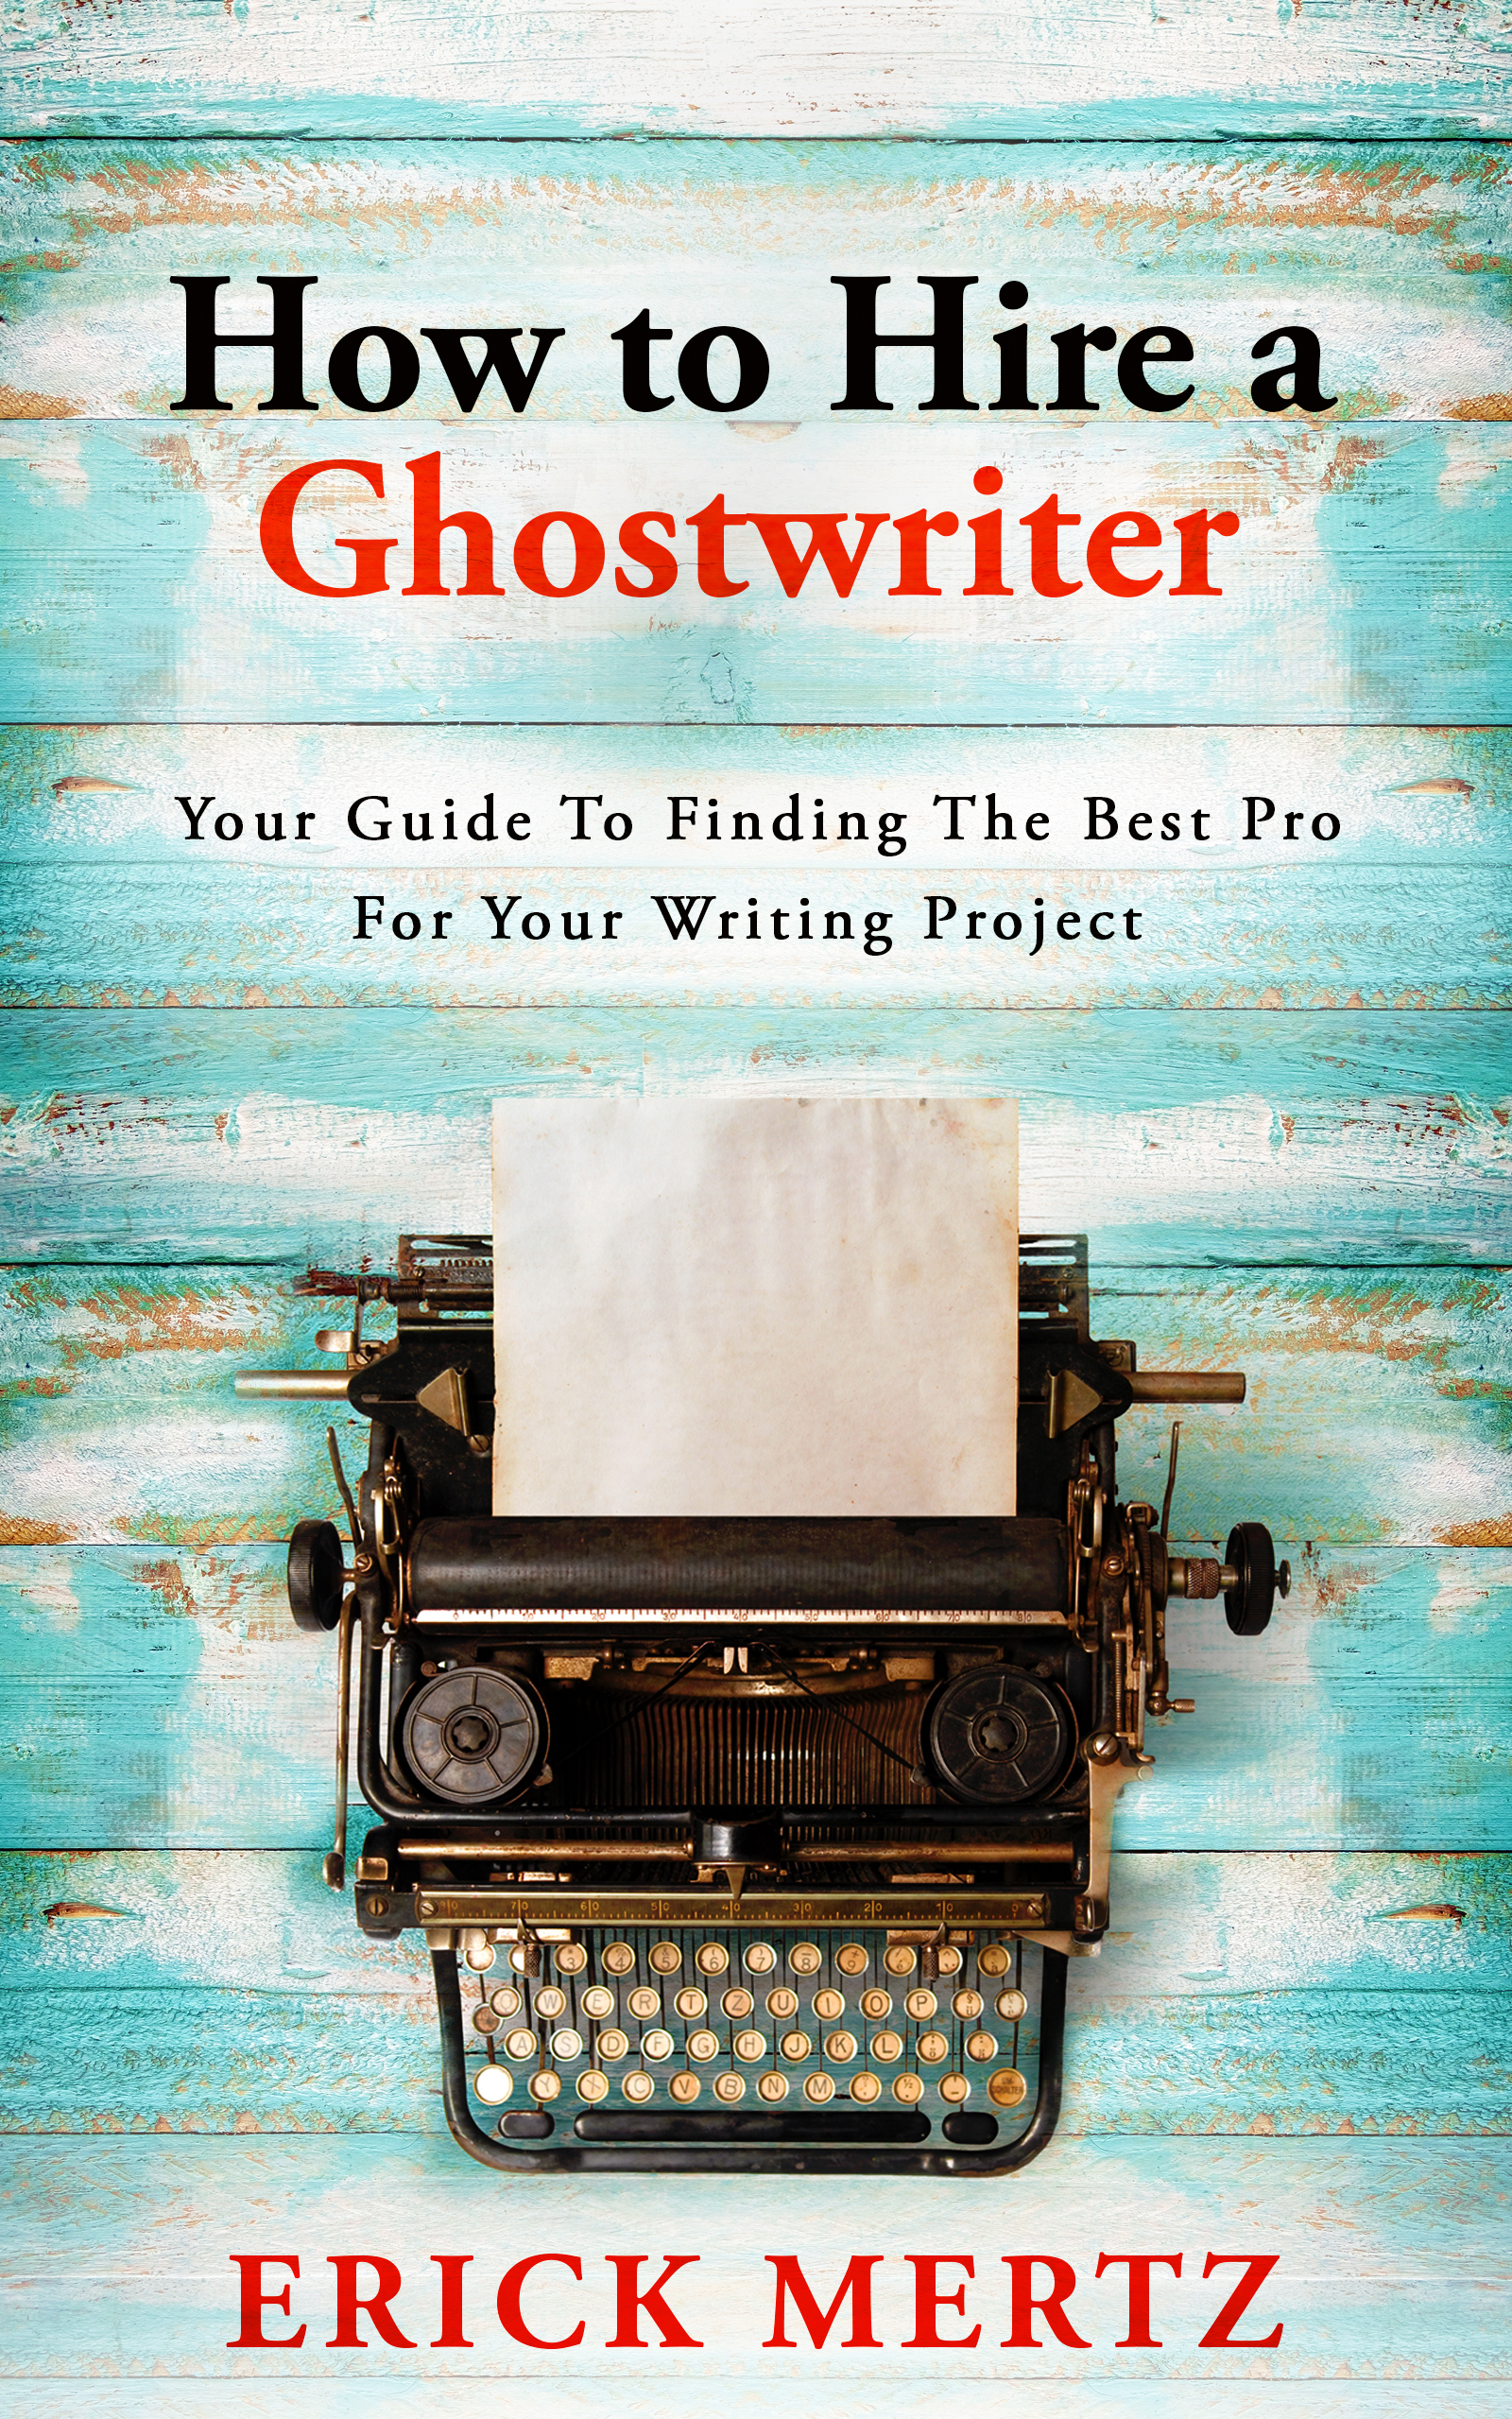 How To Hire A Ghostwriter – Free Book